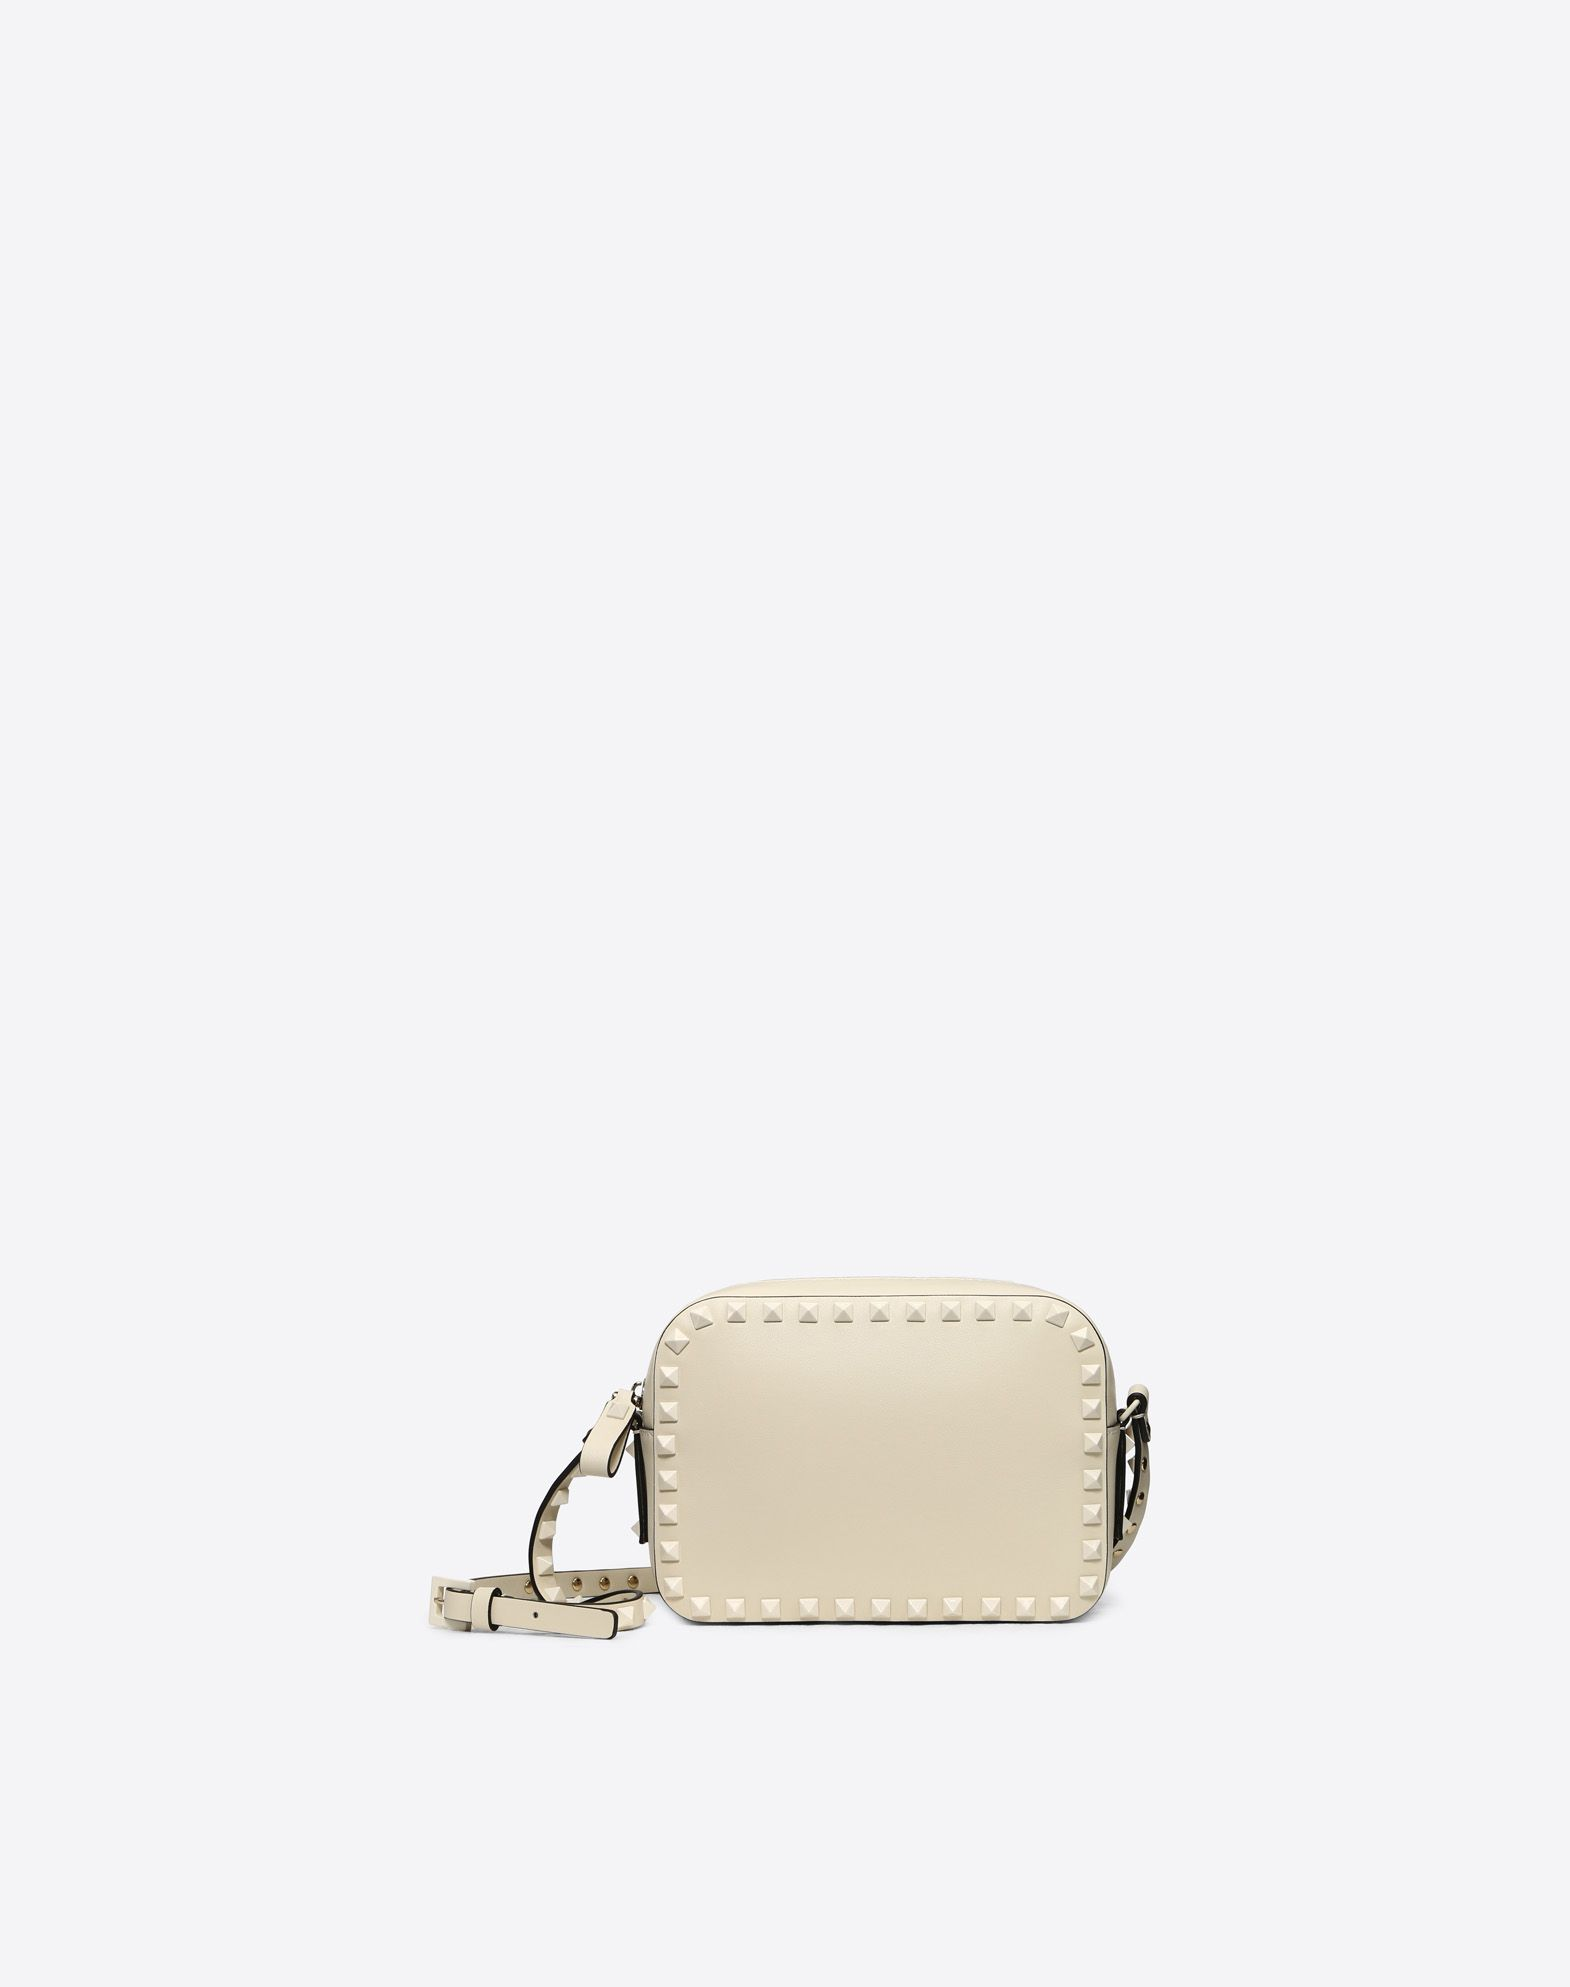 VALENTINO GARAVANI Rockstud Cross-body Bag CROSS BODY BAG D f